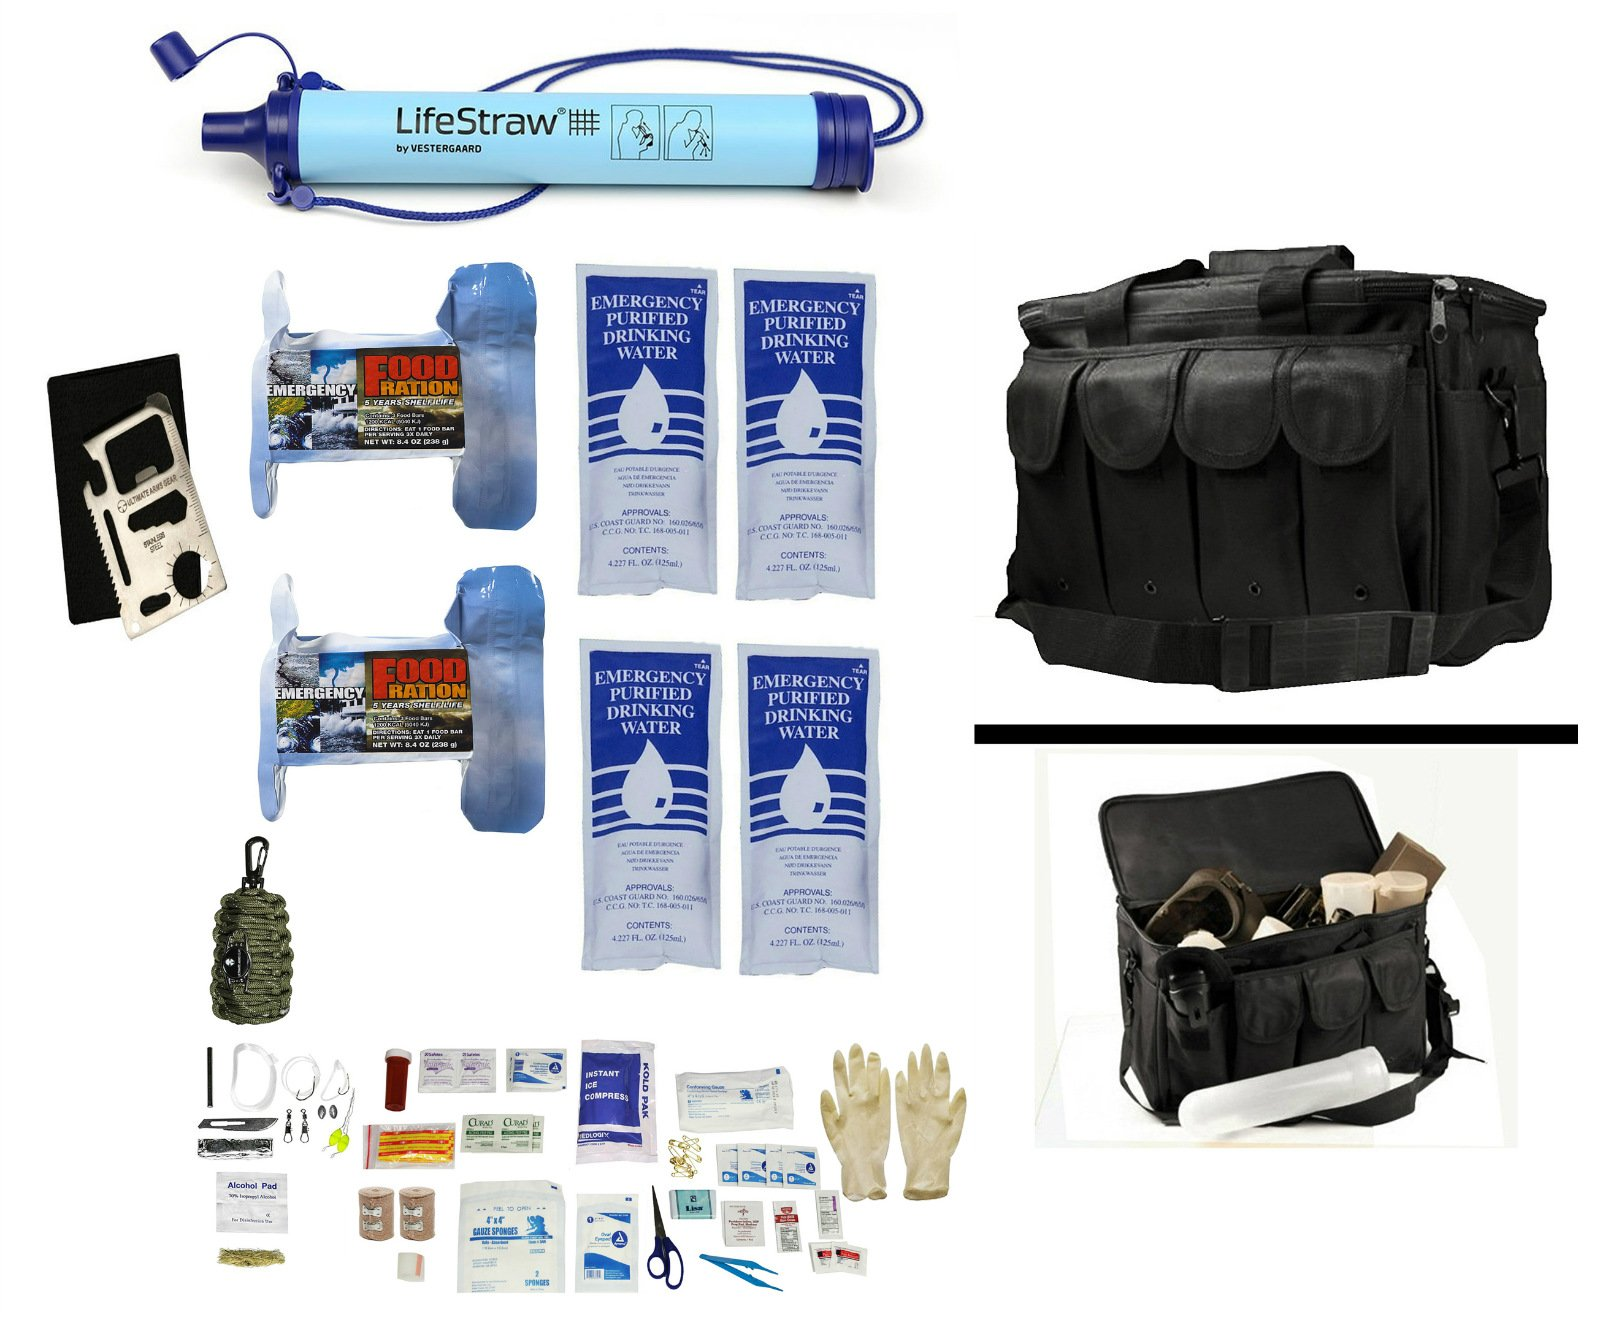 2 Person Supply 1 Day Emergency Bug Out S.O.S. Food Rations, Purified Drinking Water, LifeStraw Personal Filter + Ultimate Arms Gear Duty Gear Bag + Survival First Aid Kit & Multi Tool Set by Ultimate Arms Gear